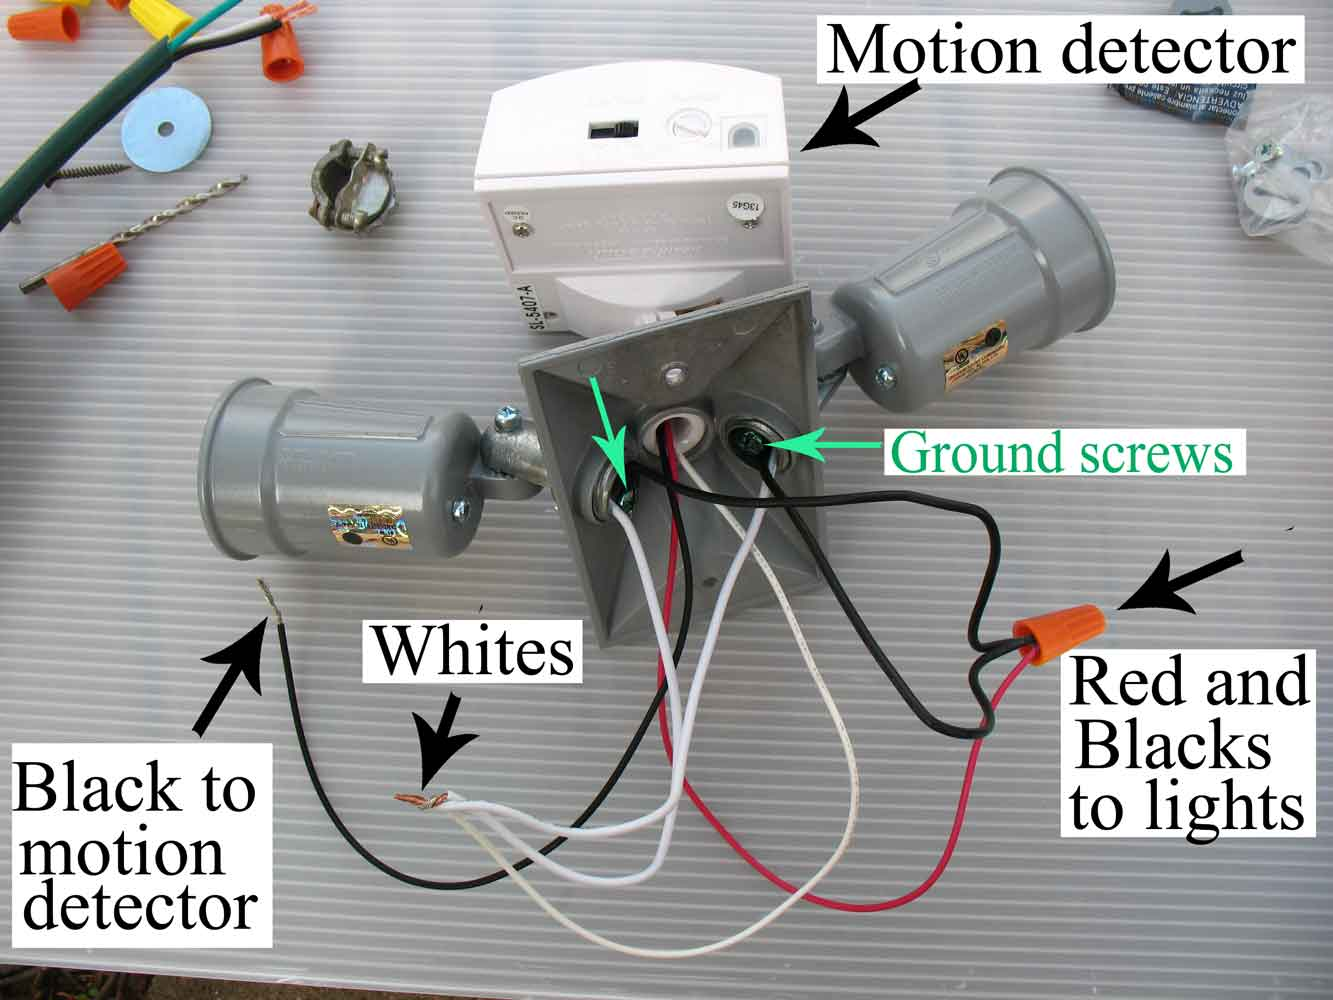 wire motion detector. Larger image ...